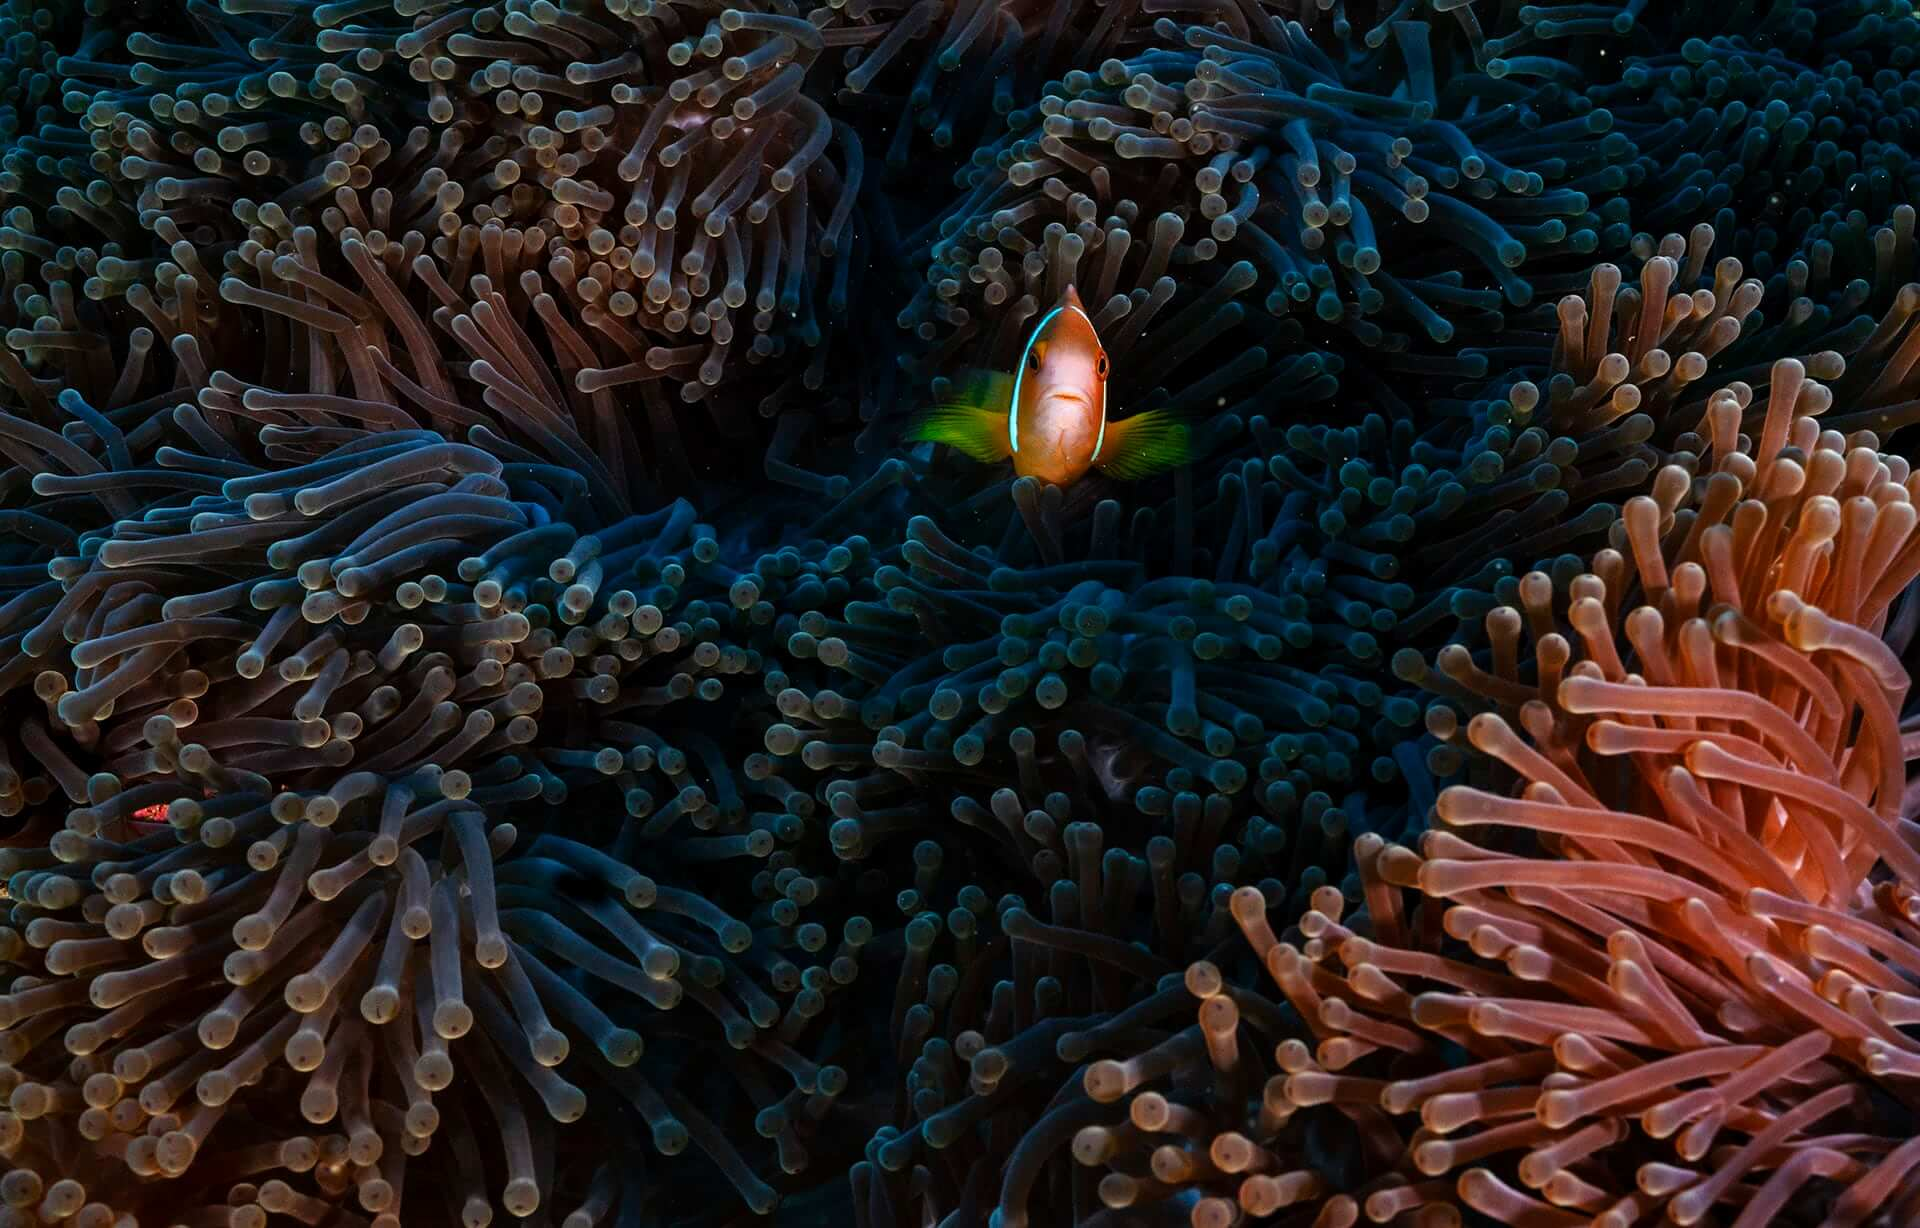 Commonly known as the Maldives anemonefish (Amphiprion nigripes), this species is actually endemic to the coral reefs of Lakshadweep, Maldives and Sri Lanka.  Deep seas and short larval dispersal periods have restricted their populations to these isles.